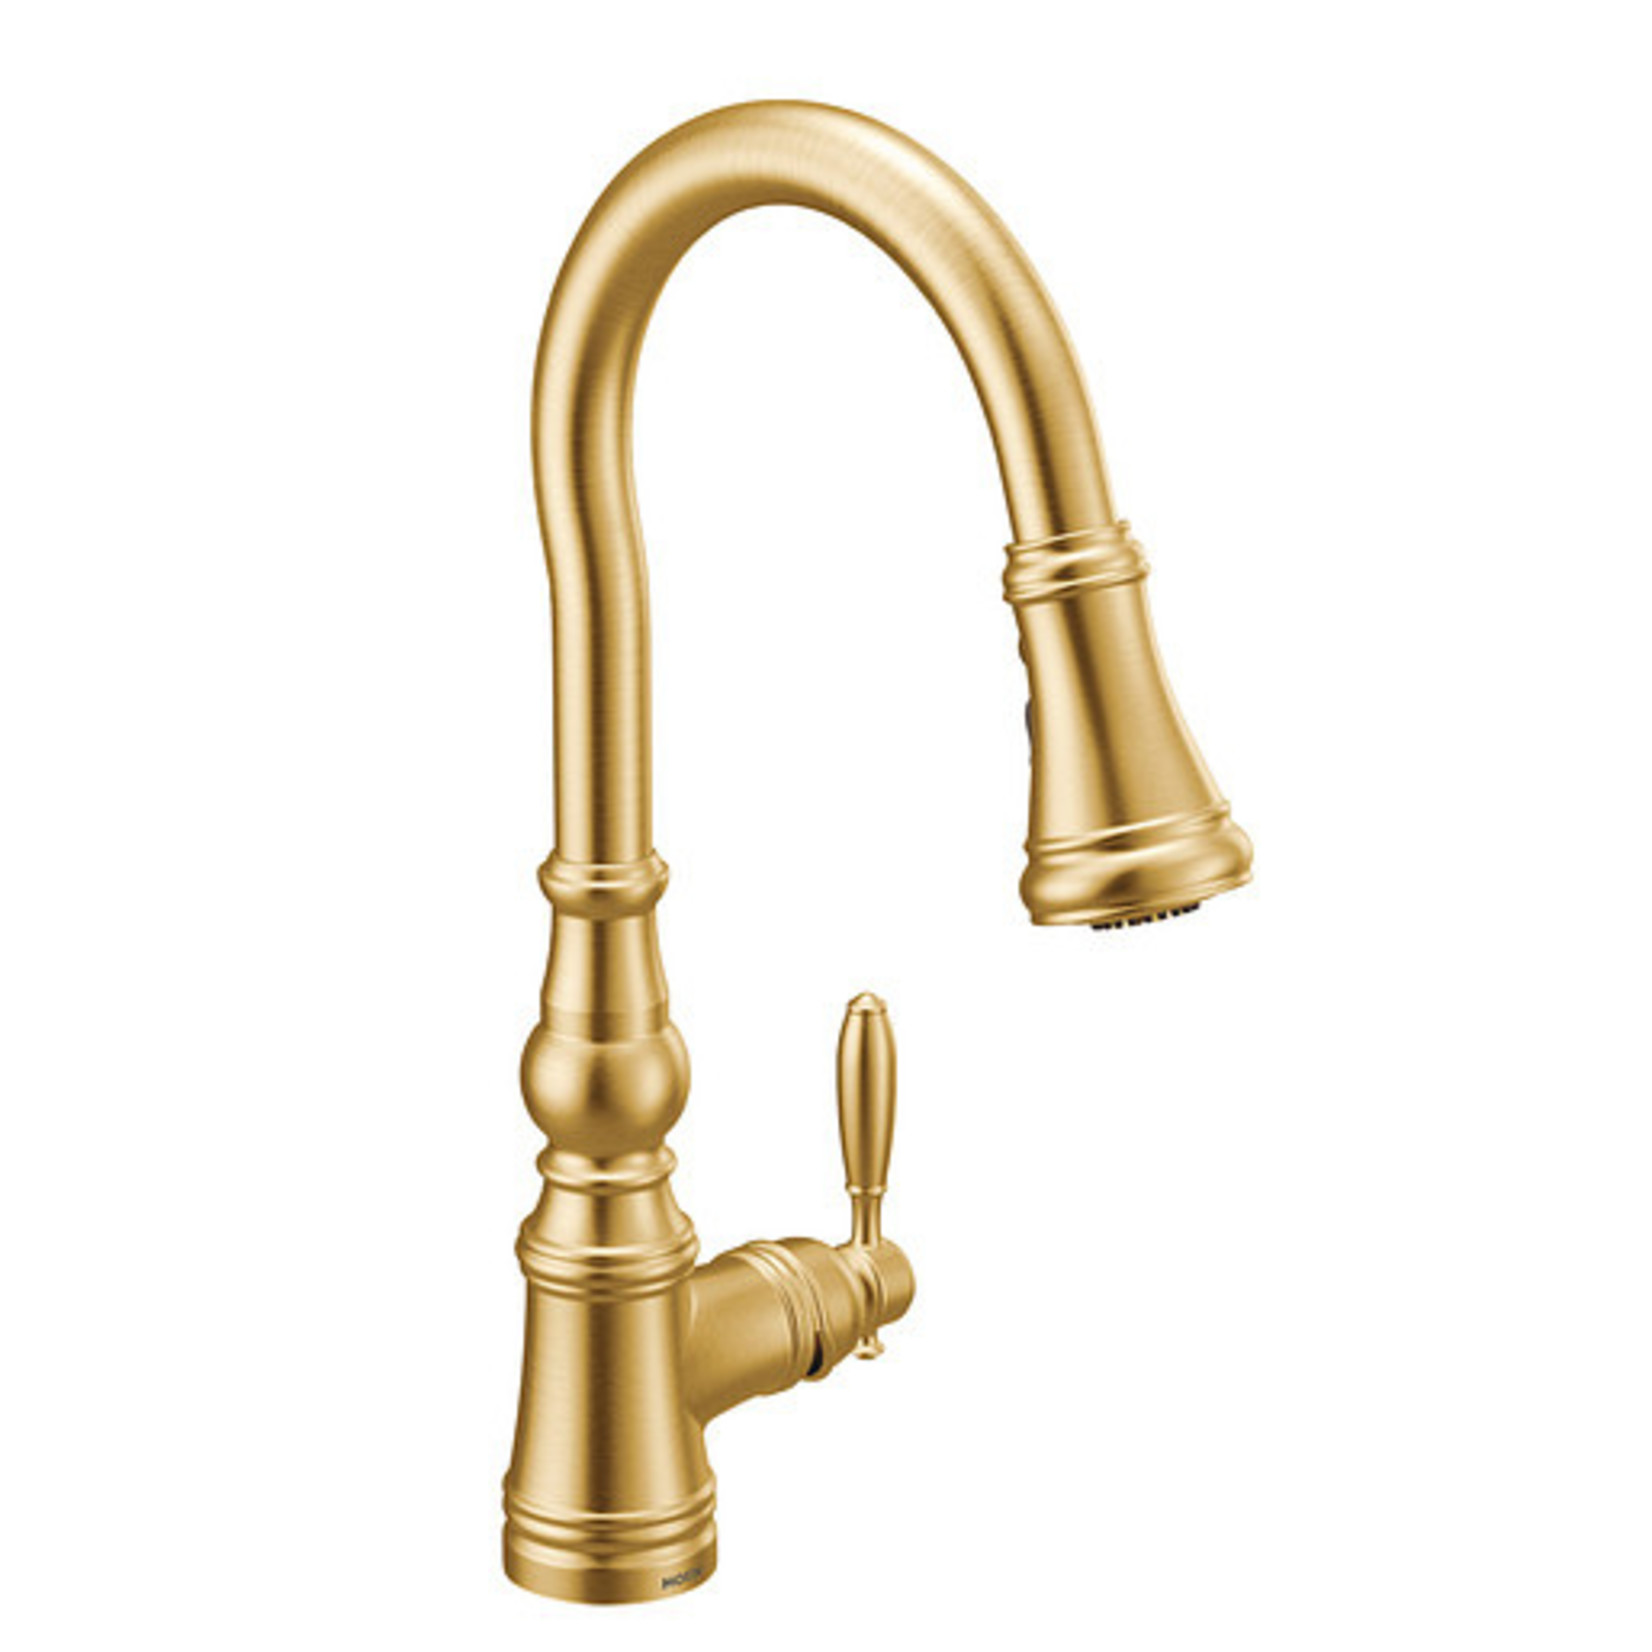 *Moen Weymouth Single Handle Kitchen Faucet with Wave, Power Boost, Duralock and Reflex - Brushed Gold